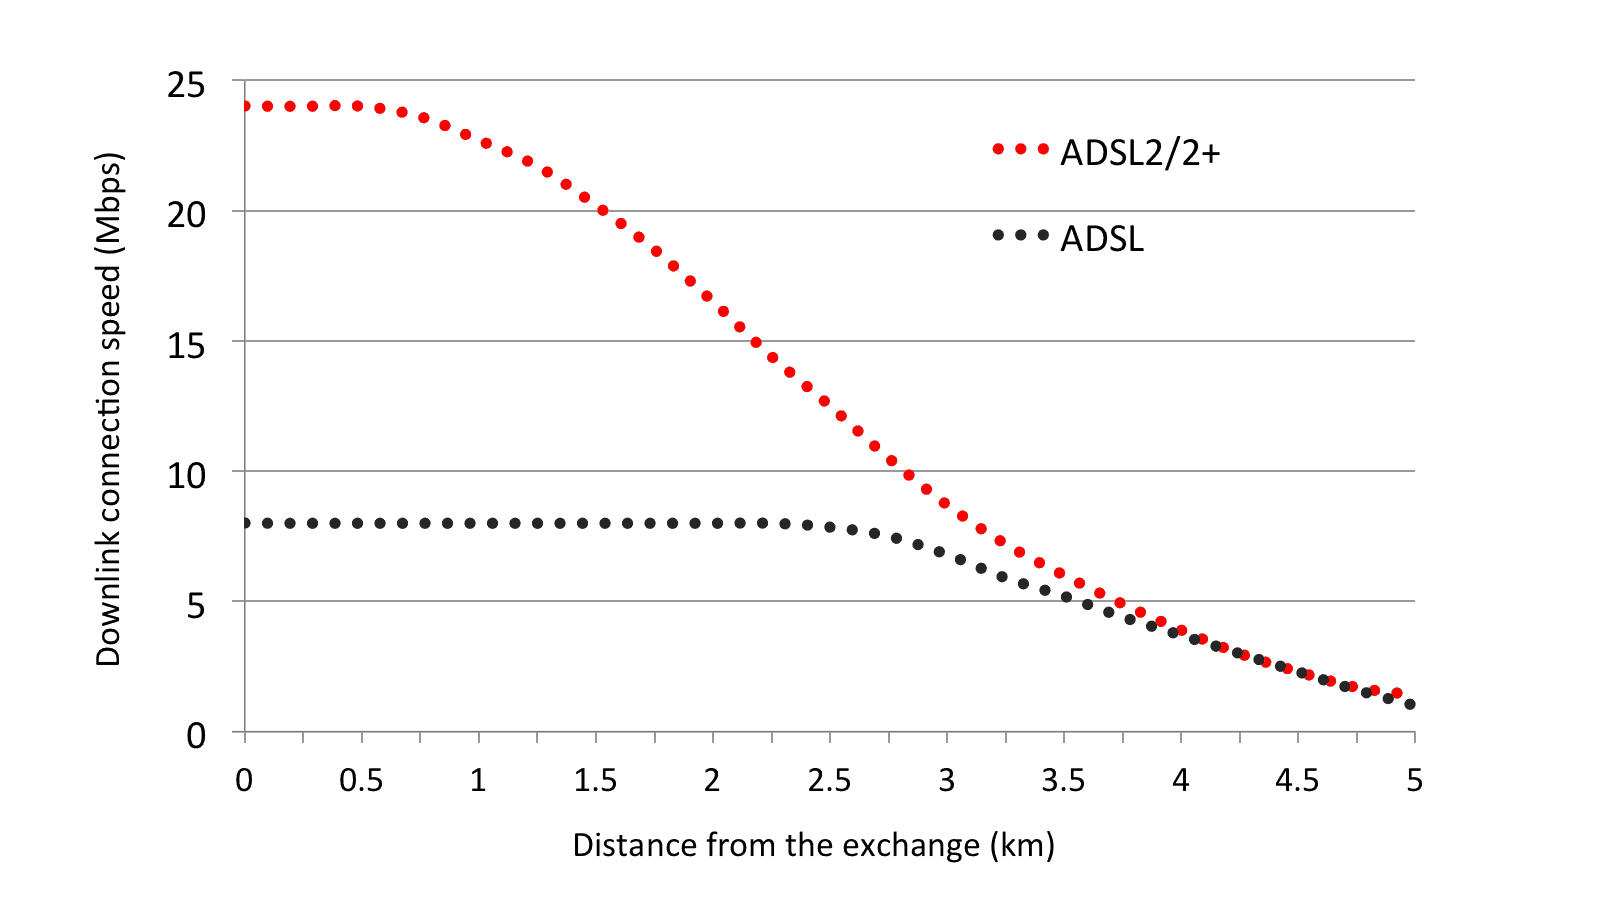 Graph of ADSL2+ and ADSL speed against distance